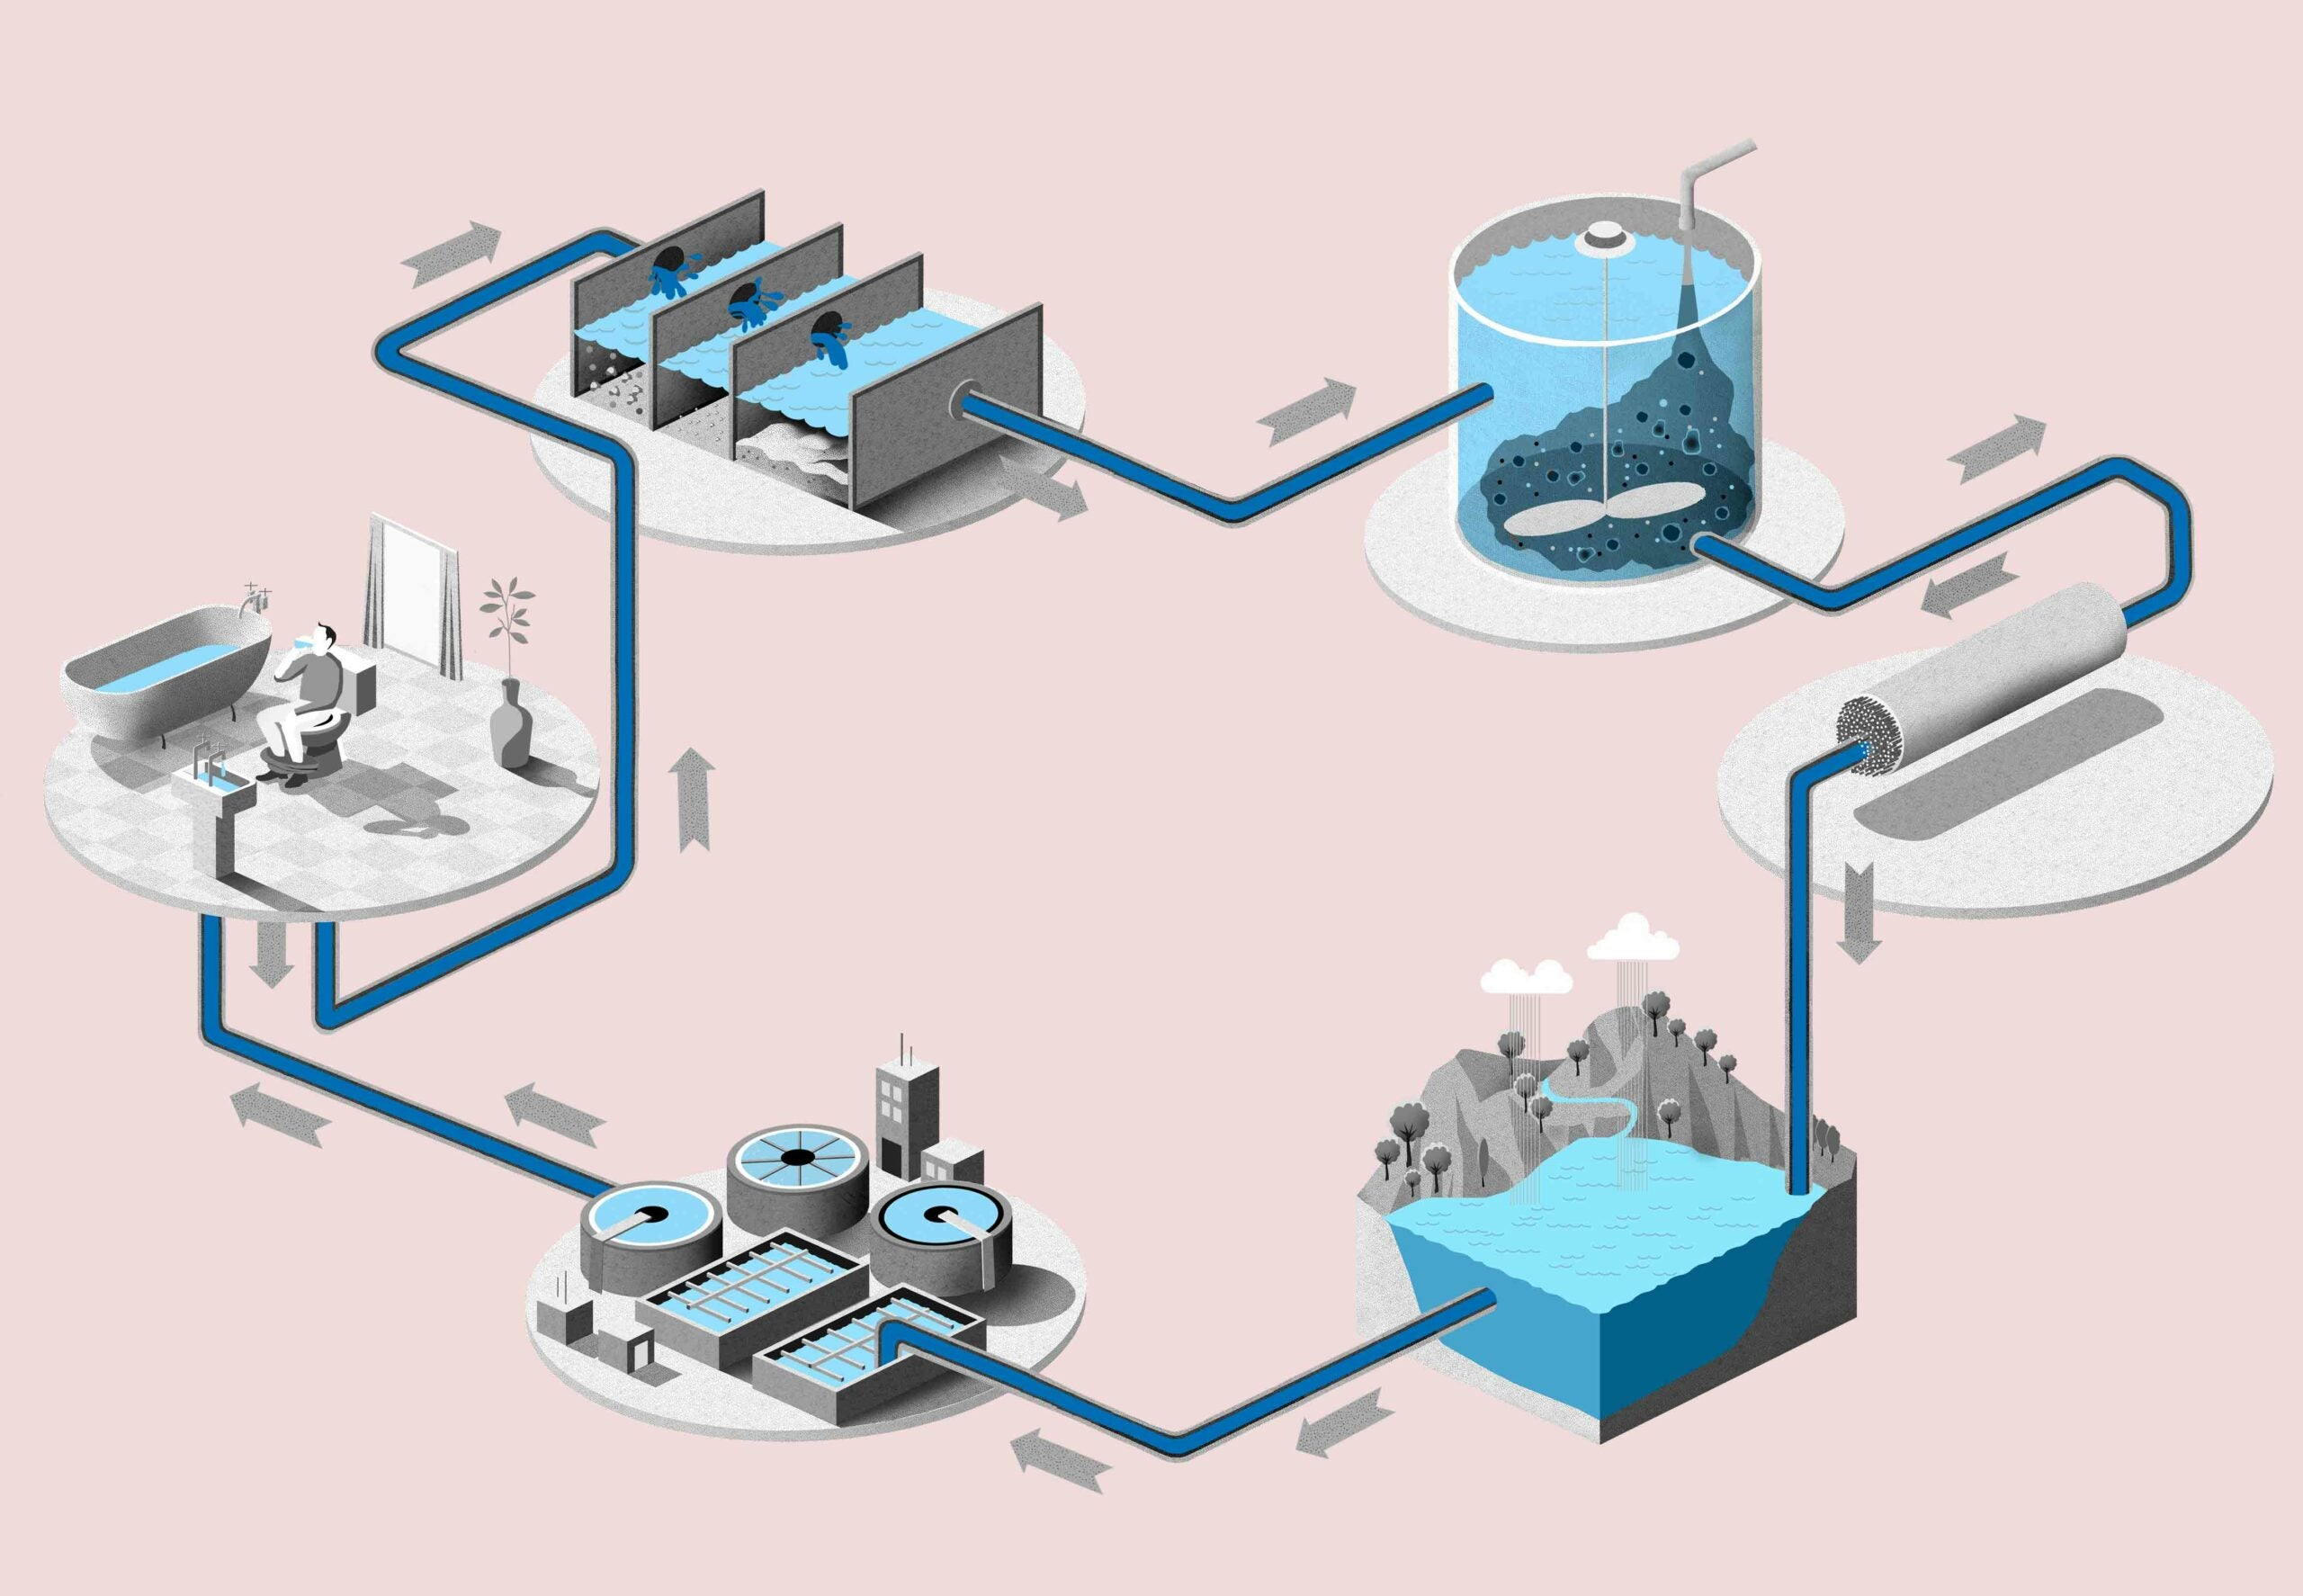 How to make sewage drinkable